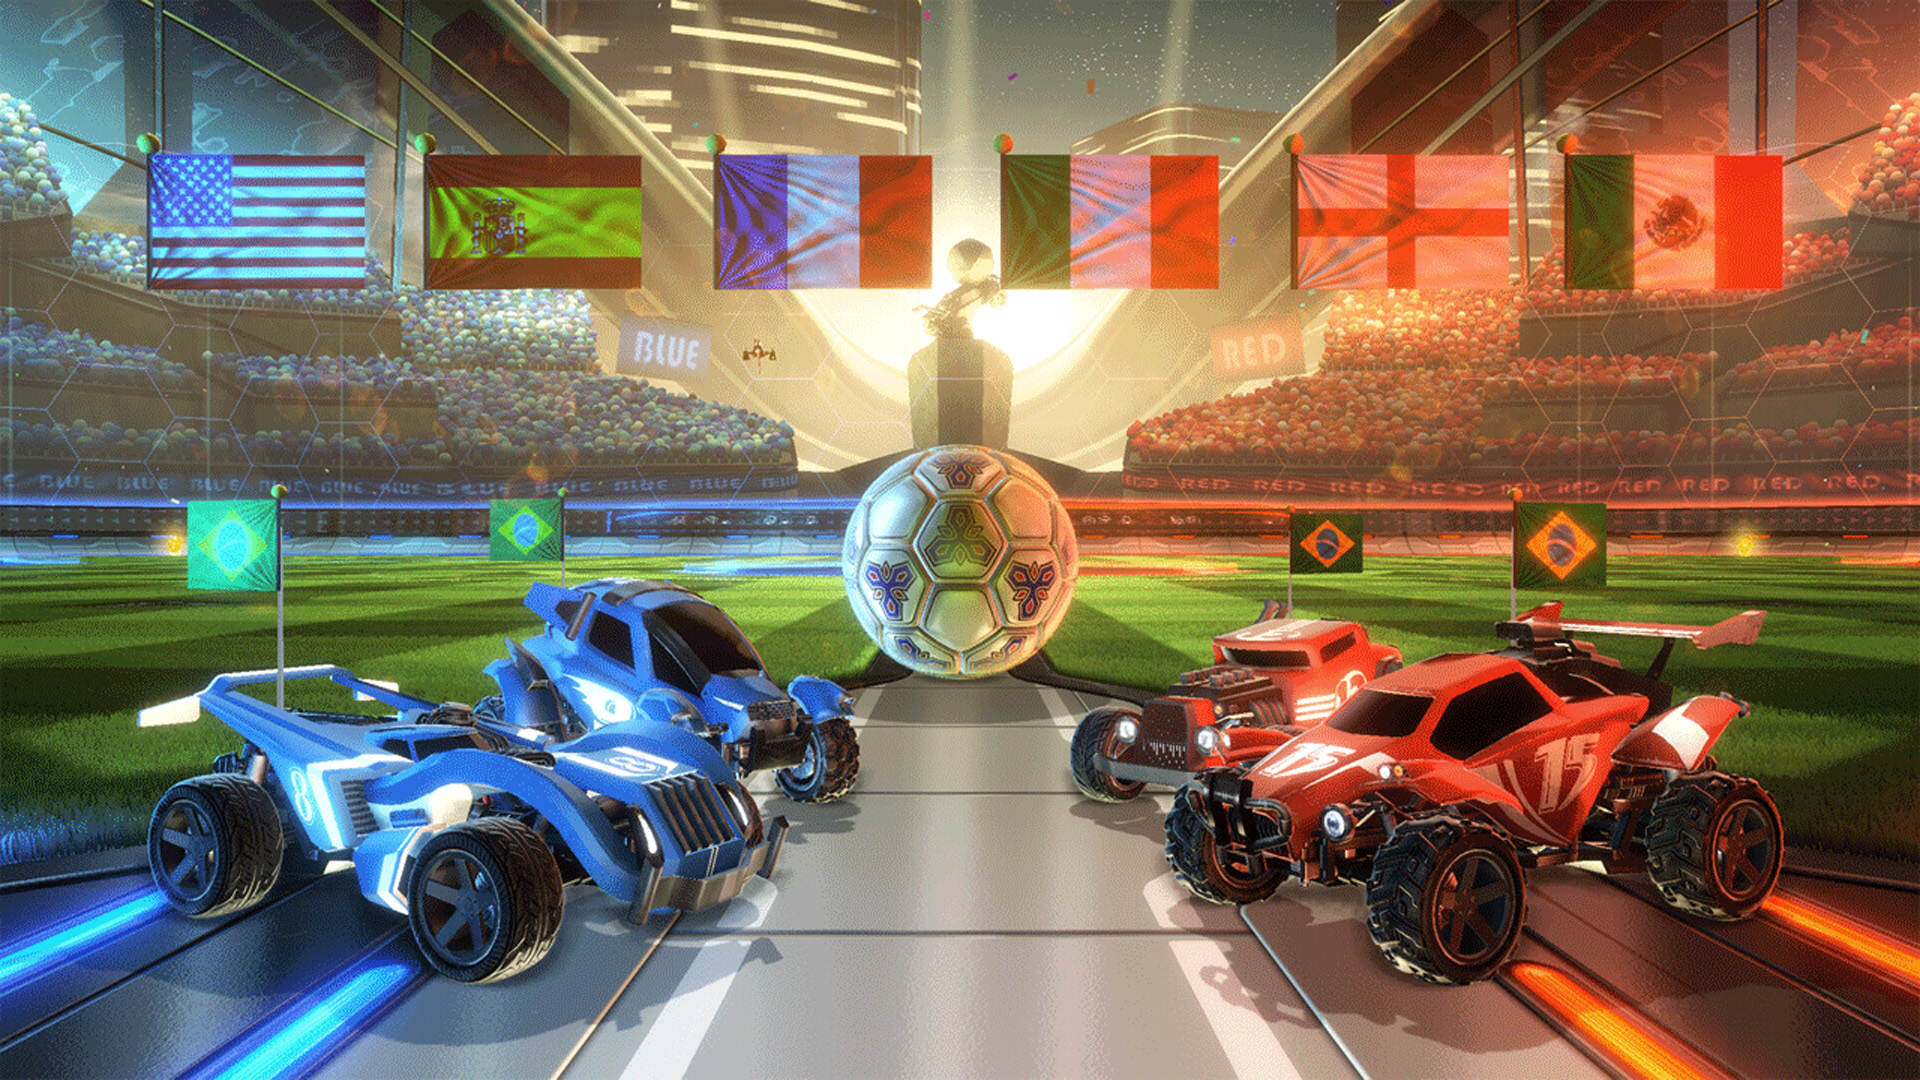 Rocket League Dev Working On Awesome New Games 1028550115145893720958548840857385798656398o 1408154993